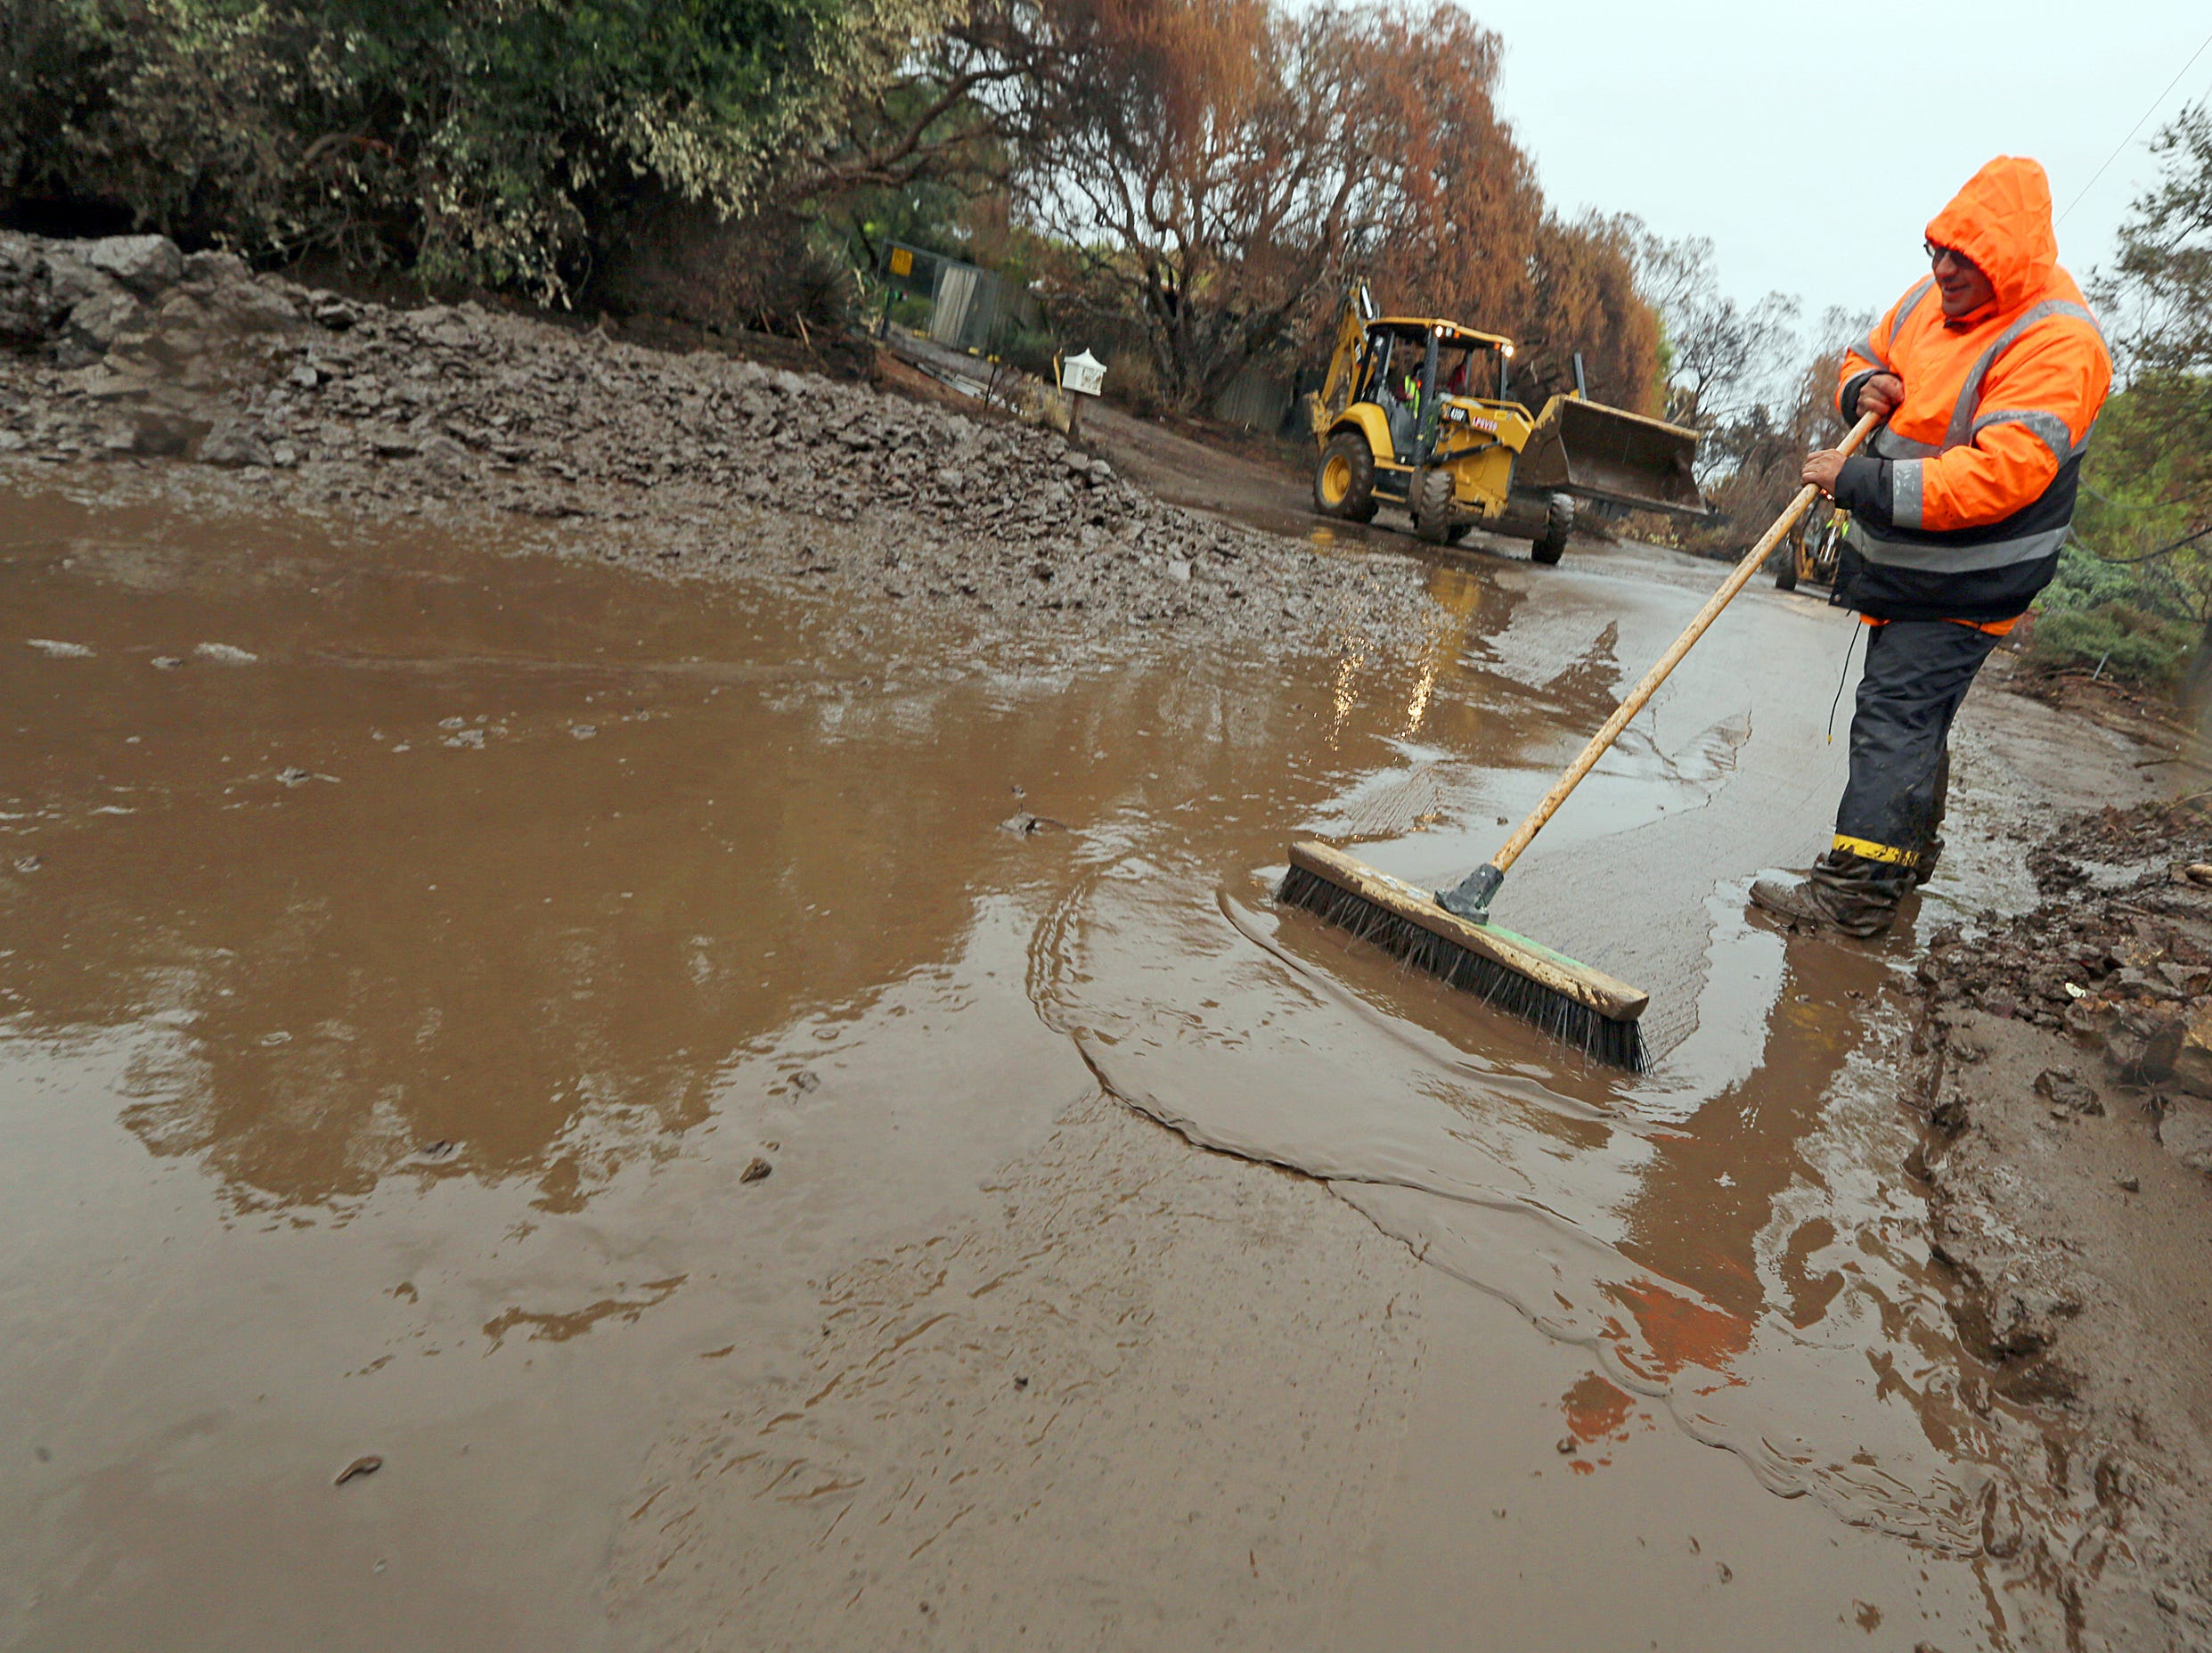 A Malibu Public Works crew clears a culvert that overflowed with mud and debris on Cuthbert Road in an area burned by the Woolsey fire in Malibu, Calif. Thursday, Dec. 6, 2018. The second round of a fall storm is causing flooding on Los Angeles-area roads. Snow has forced the closure of Interstate 5 in the Grapevine area between LA and the San Joaquin Valley. Closer to sea level, the system dumped rain that flooded highways and caused nightmare traffic conditions for commuters.